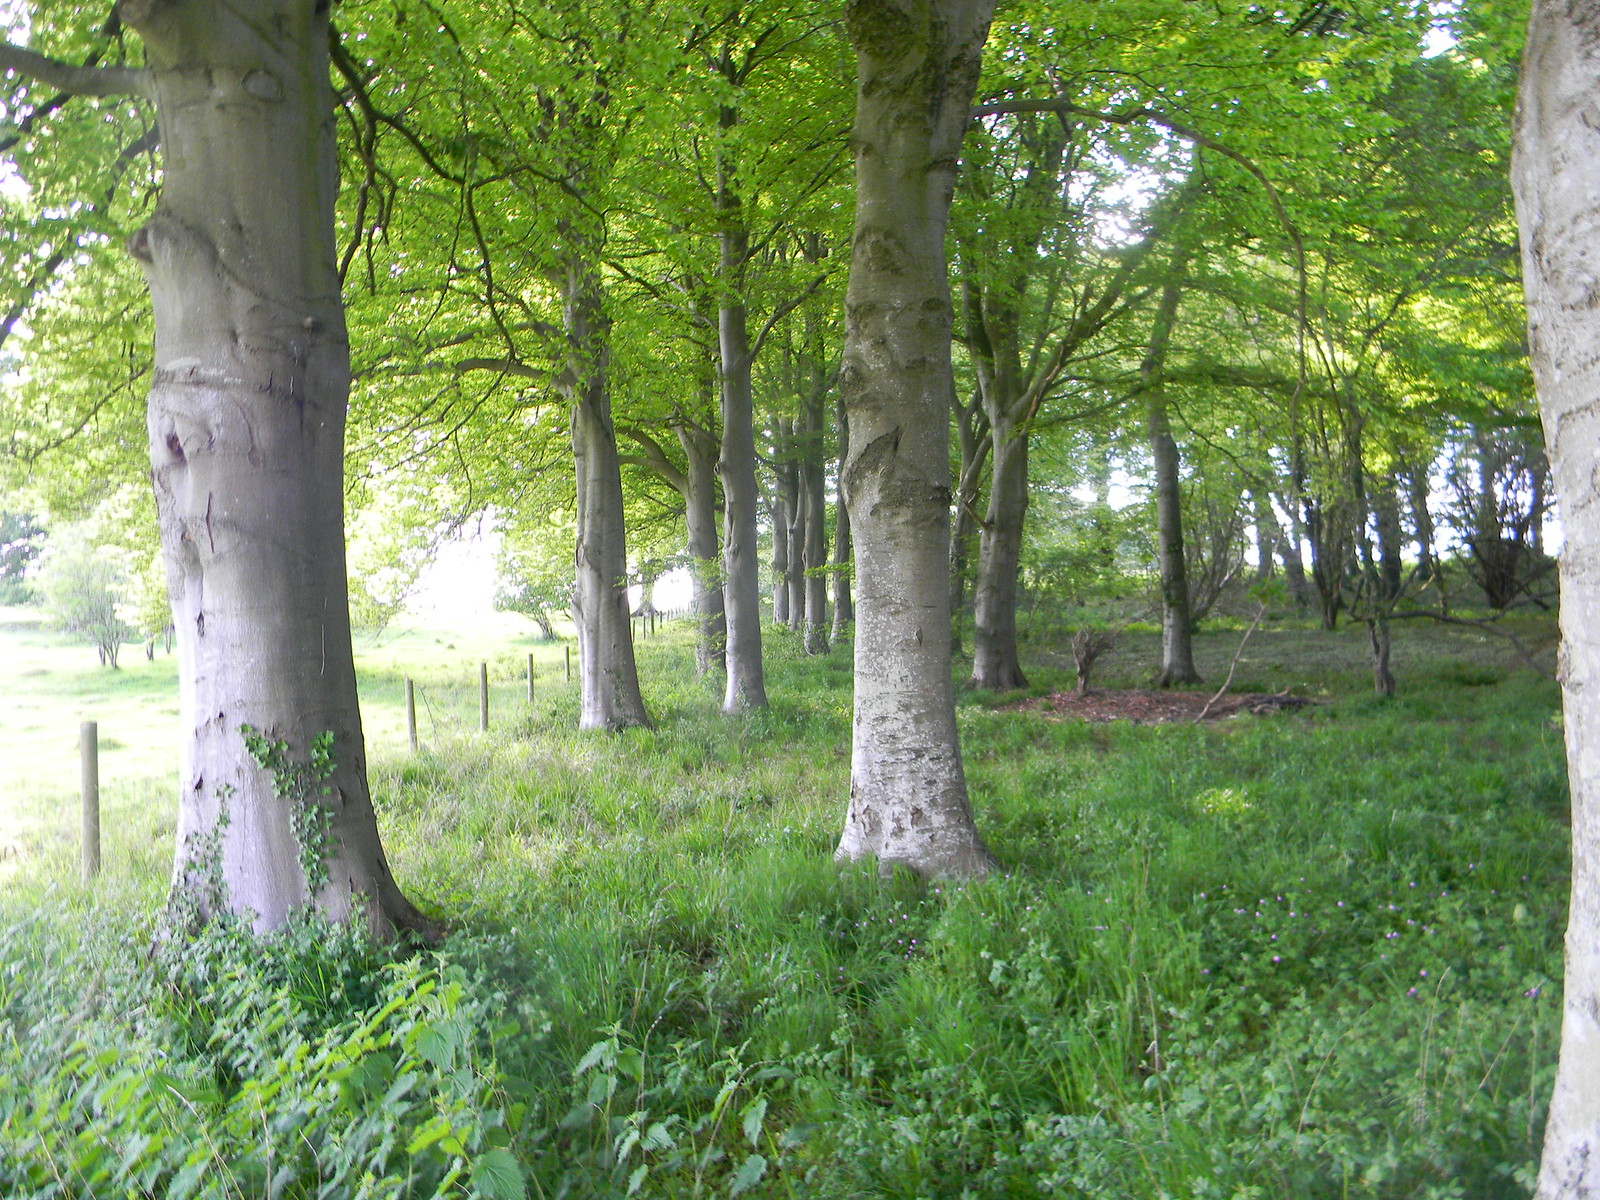 Trees in a wood Salisbury to Amesbury via Stonehenge